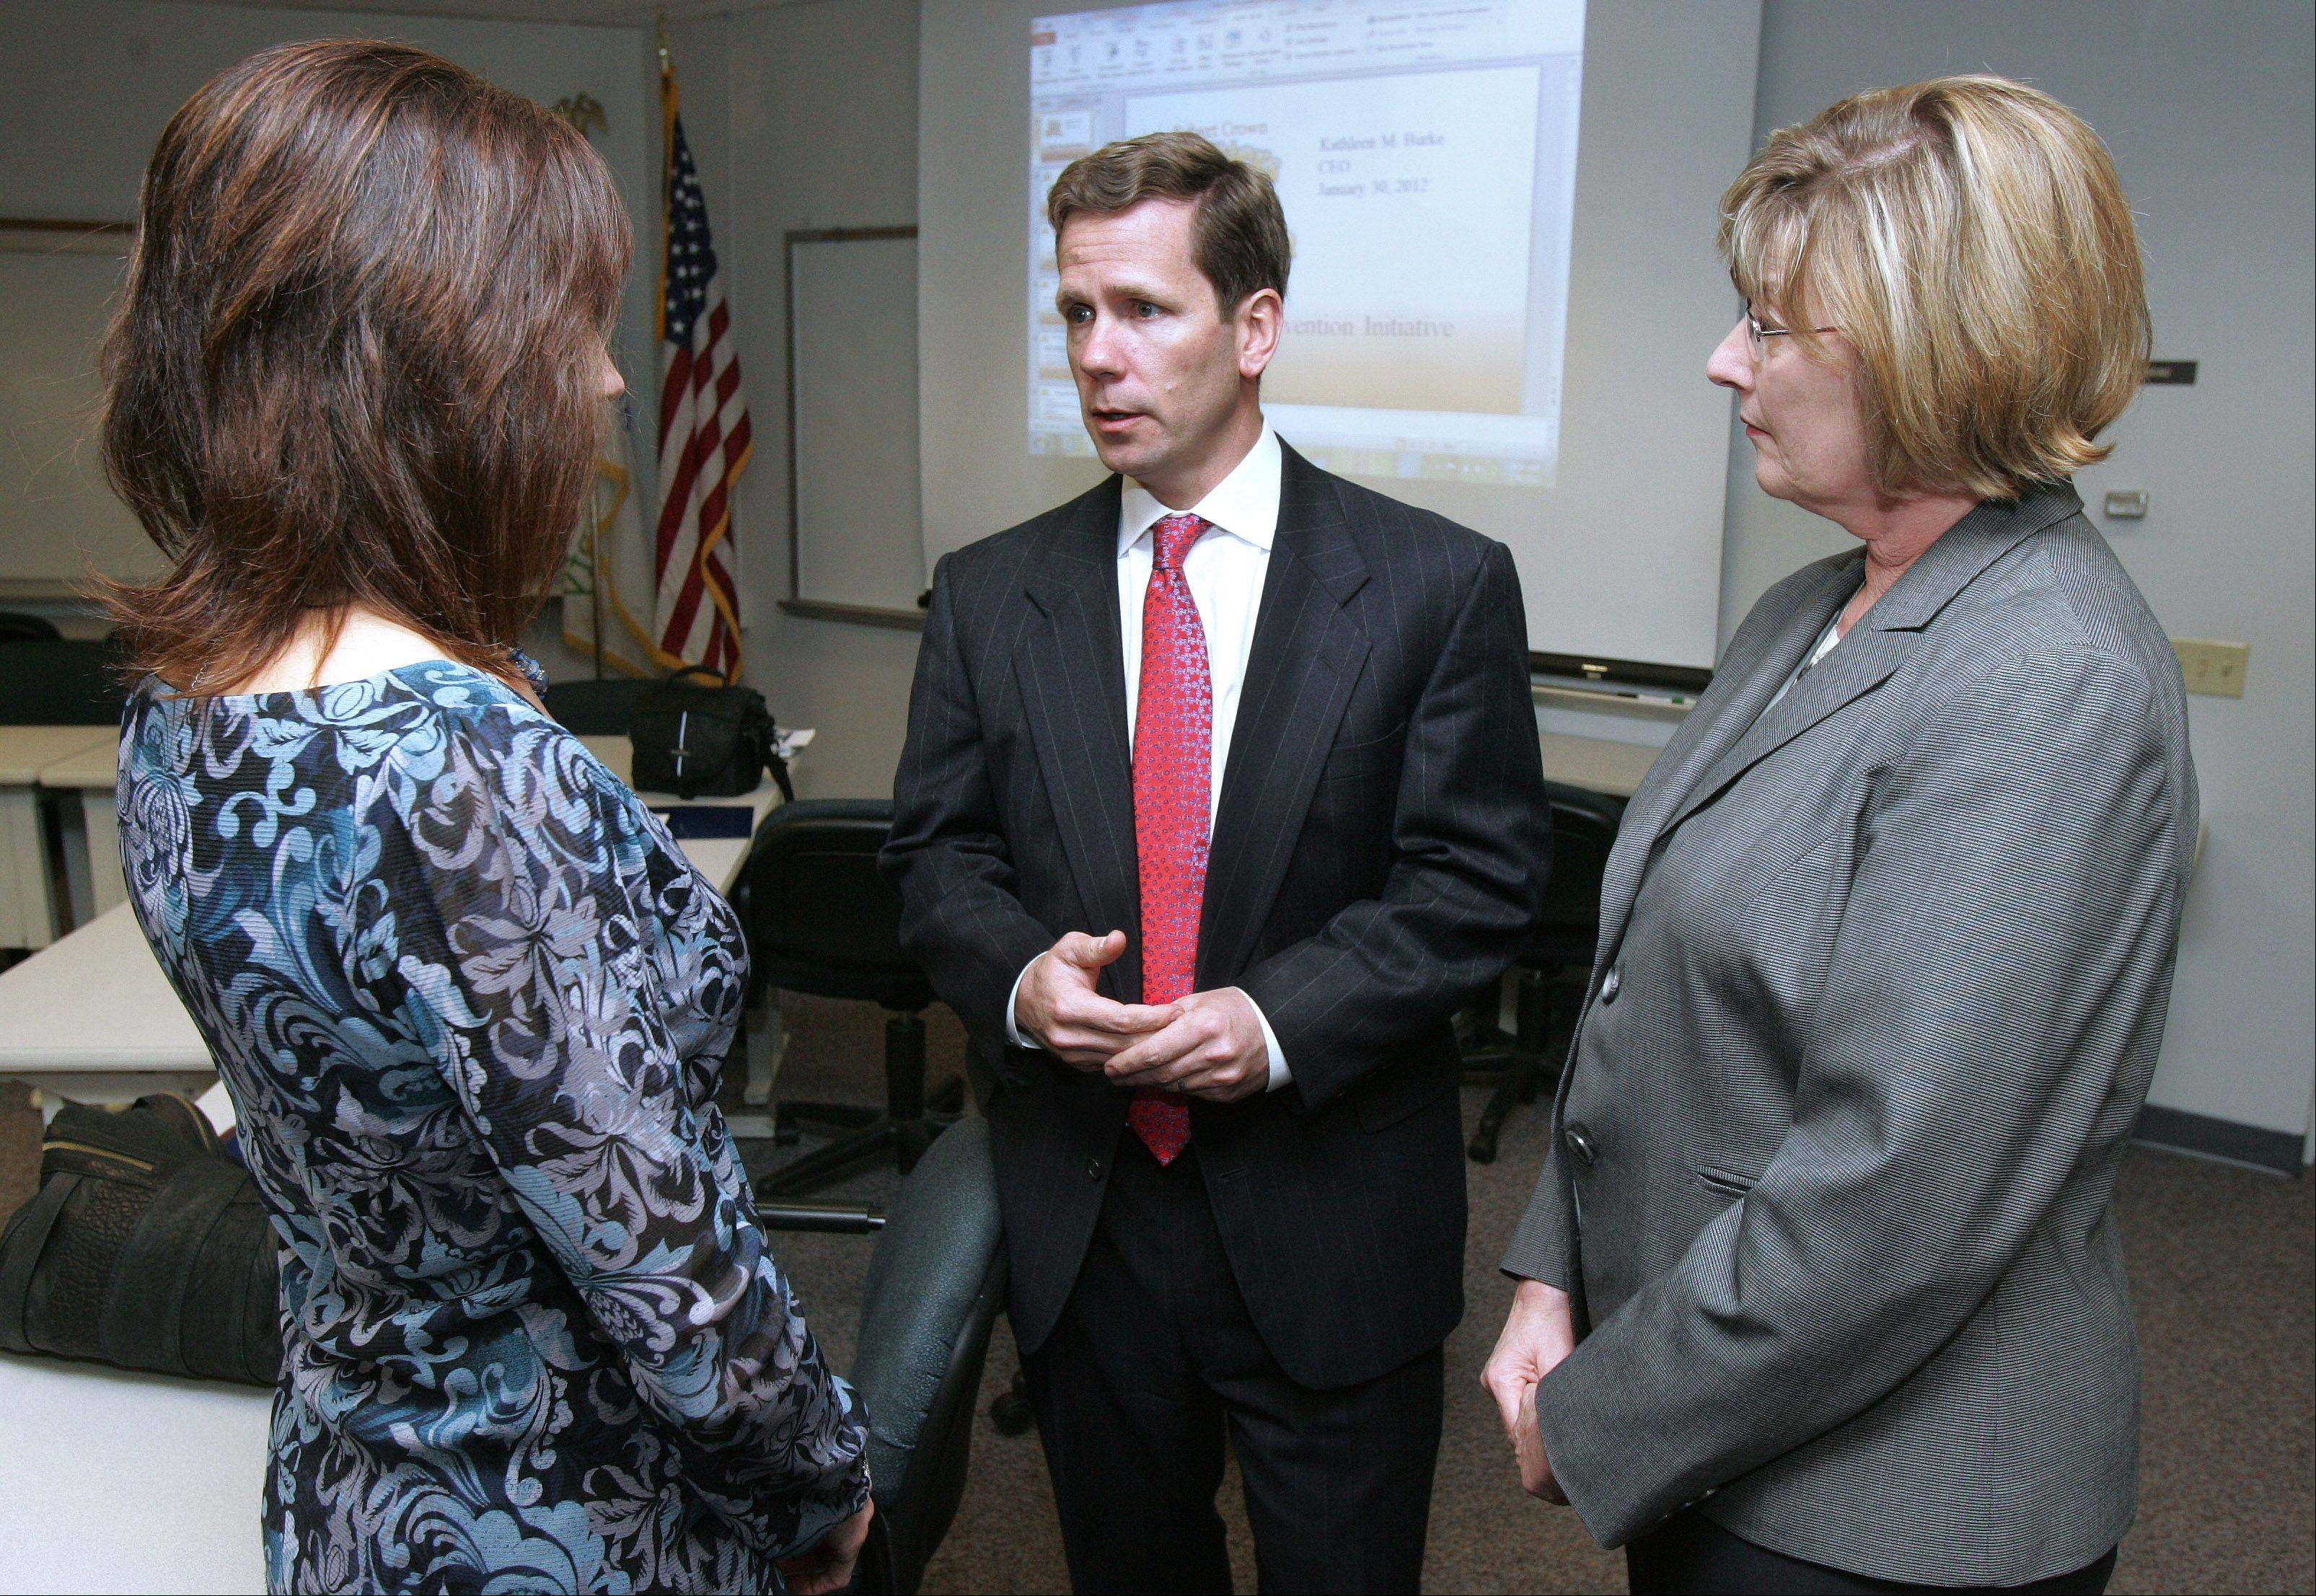 U.S. Congressman Robert J. Dold talks to Michelle Hines, of Hearts of Hope, left, and Irene Pierce, executive director of the Lake County Health Department, before the start of a round-table discussion on the dangers of heroin. The session Monday in Lake County was attended by local school, law enforcement, and substance abuse authorities.